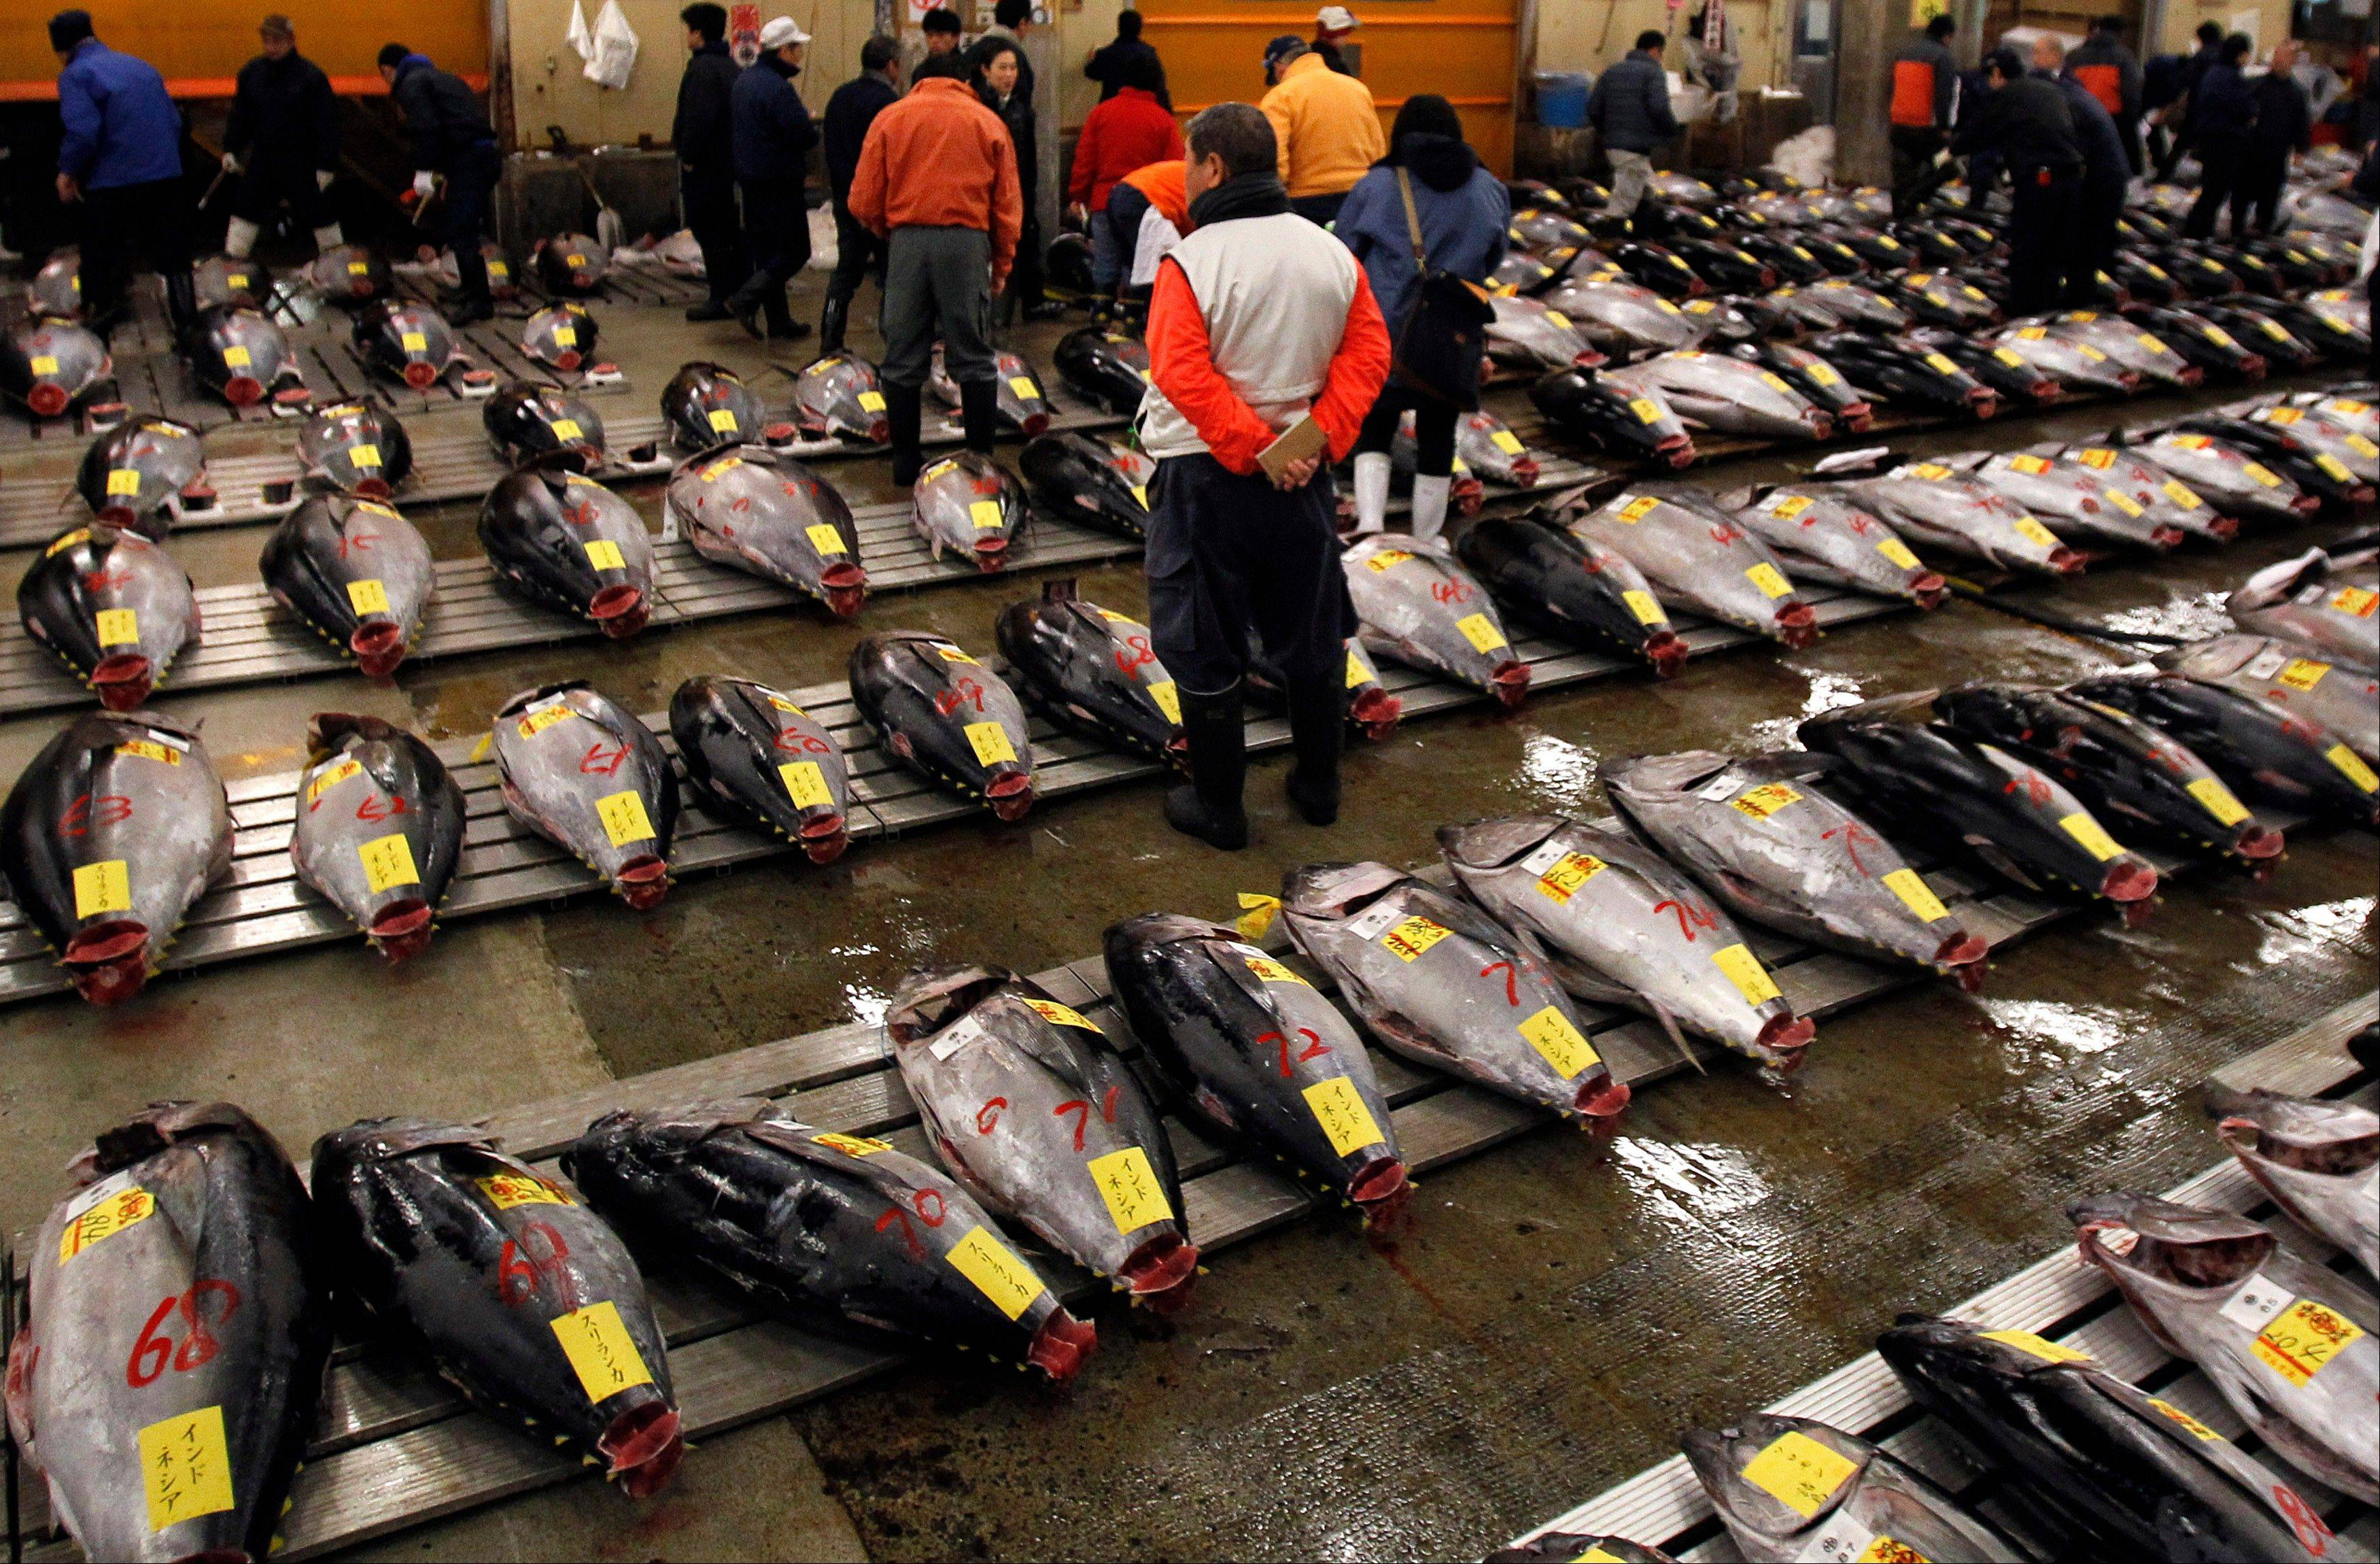 Catching bluefin tuna, called �hon-maguro� here, is a lucrative business. A single full-grown specimen can sell for 2 million yen, or $20,000, at Tokyo's sprawling Tsukiji fish market. Japanese fishermen are vying with Korean, Taiwanese and Mexican fisherman for a piece of a $900 million wholesale market.